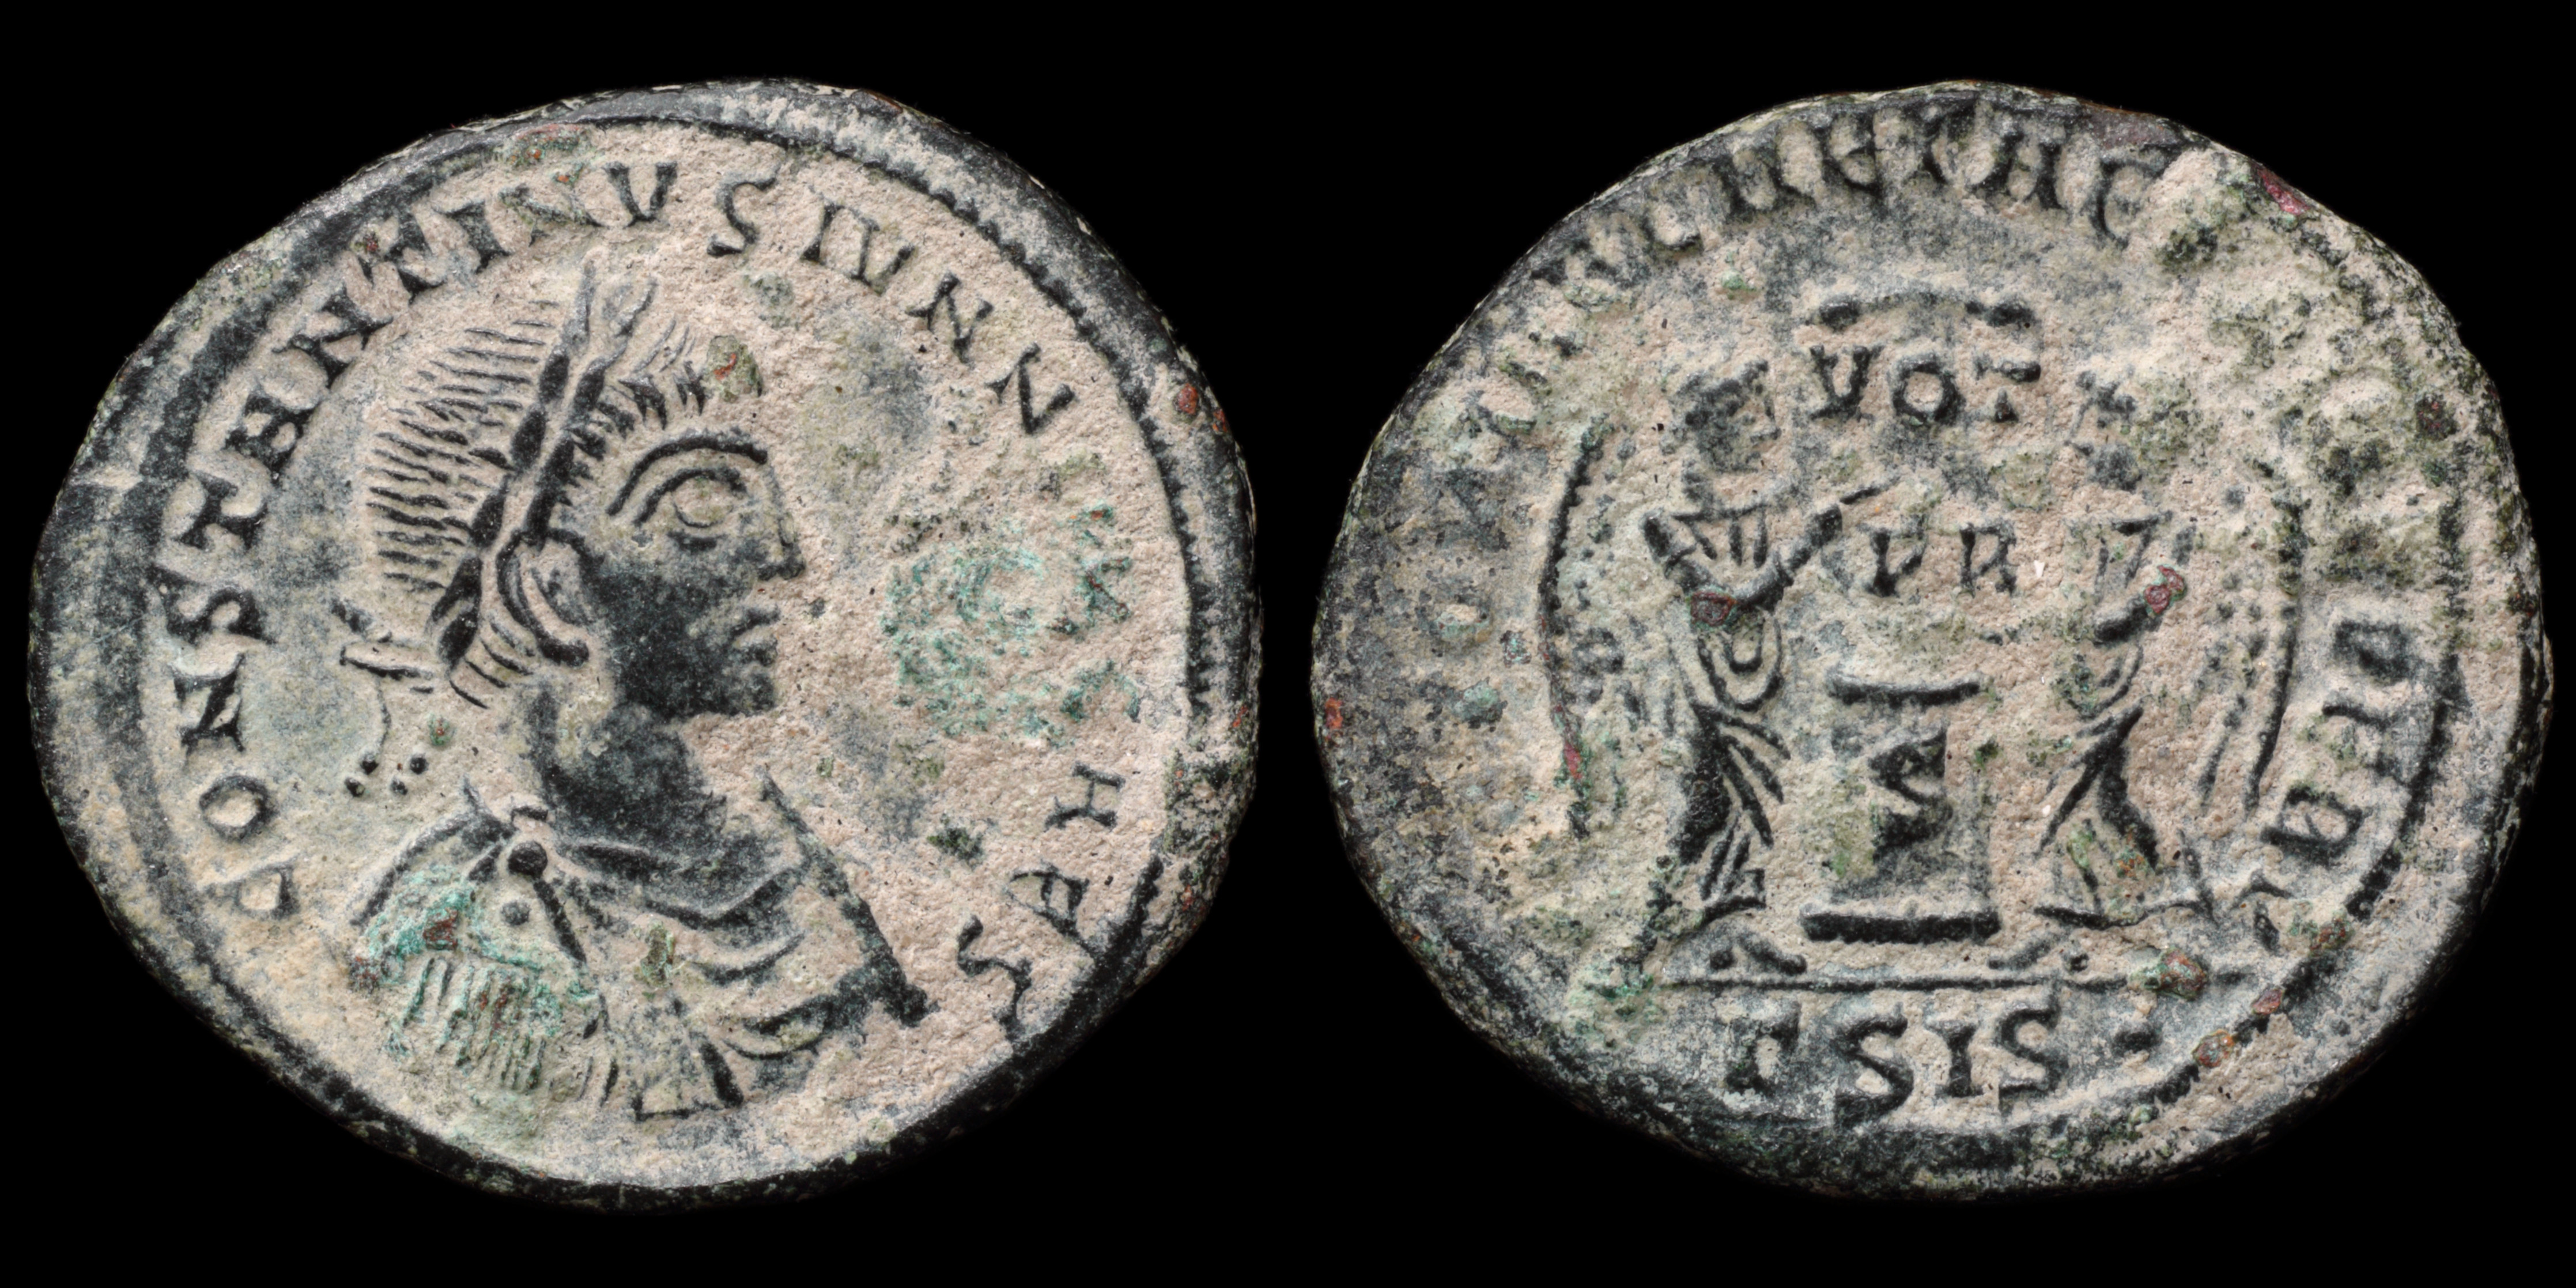 /Files/Images/Coinsite/CoinDB/1554_Constantine_II_Siscia.jpg